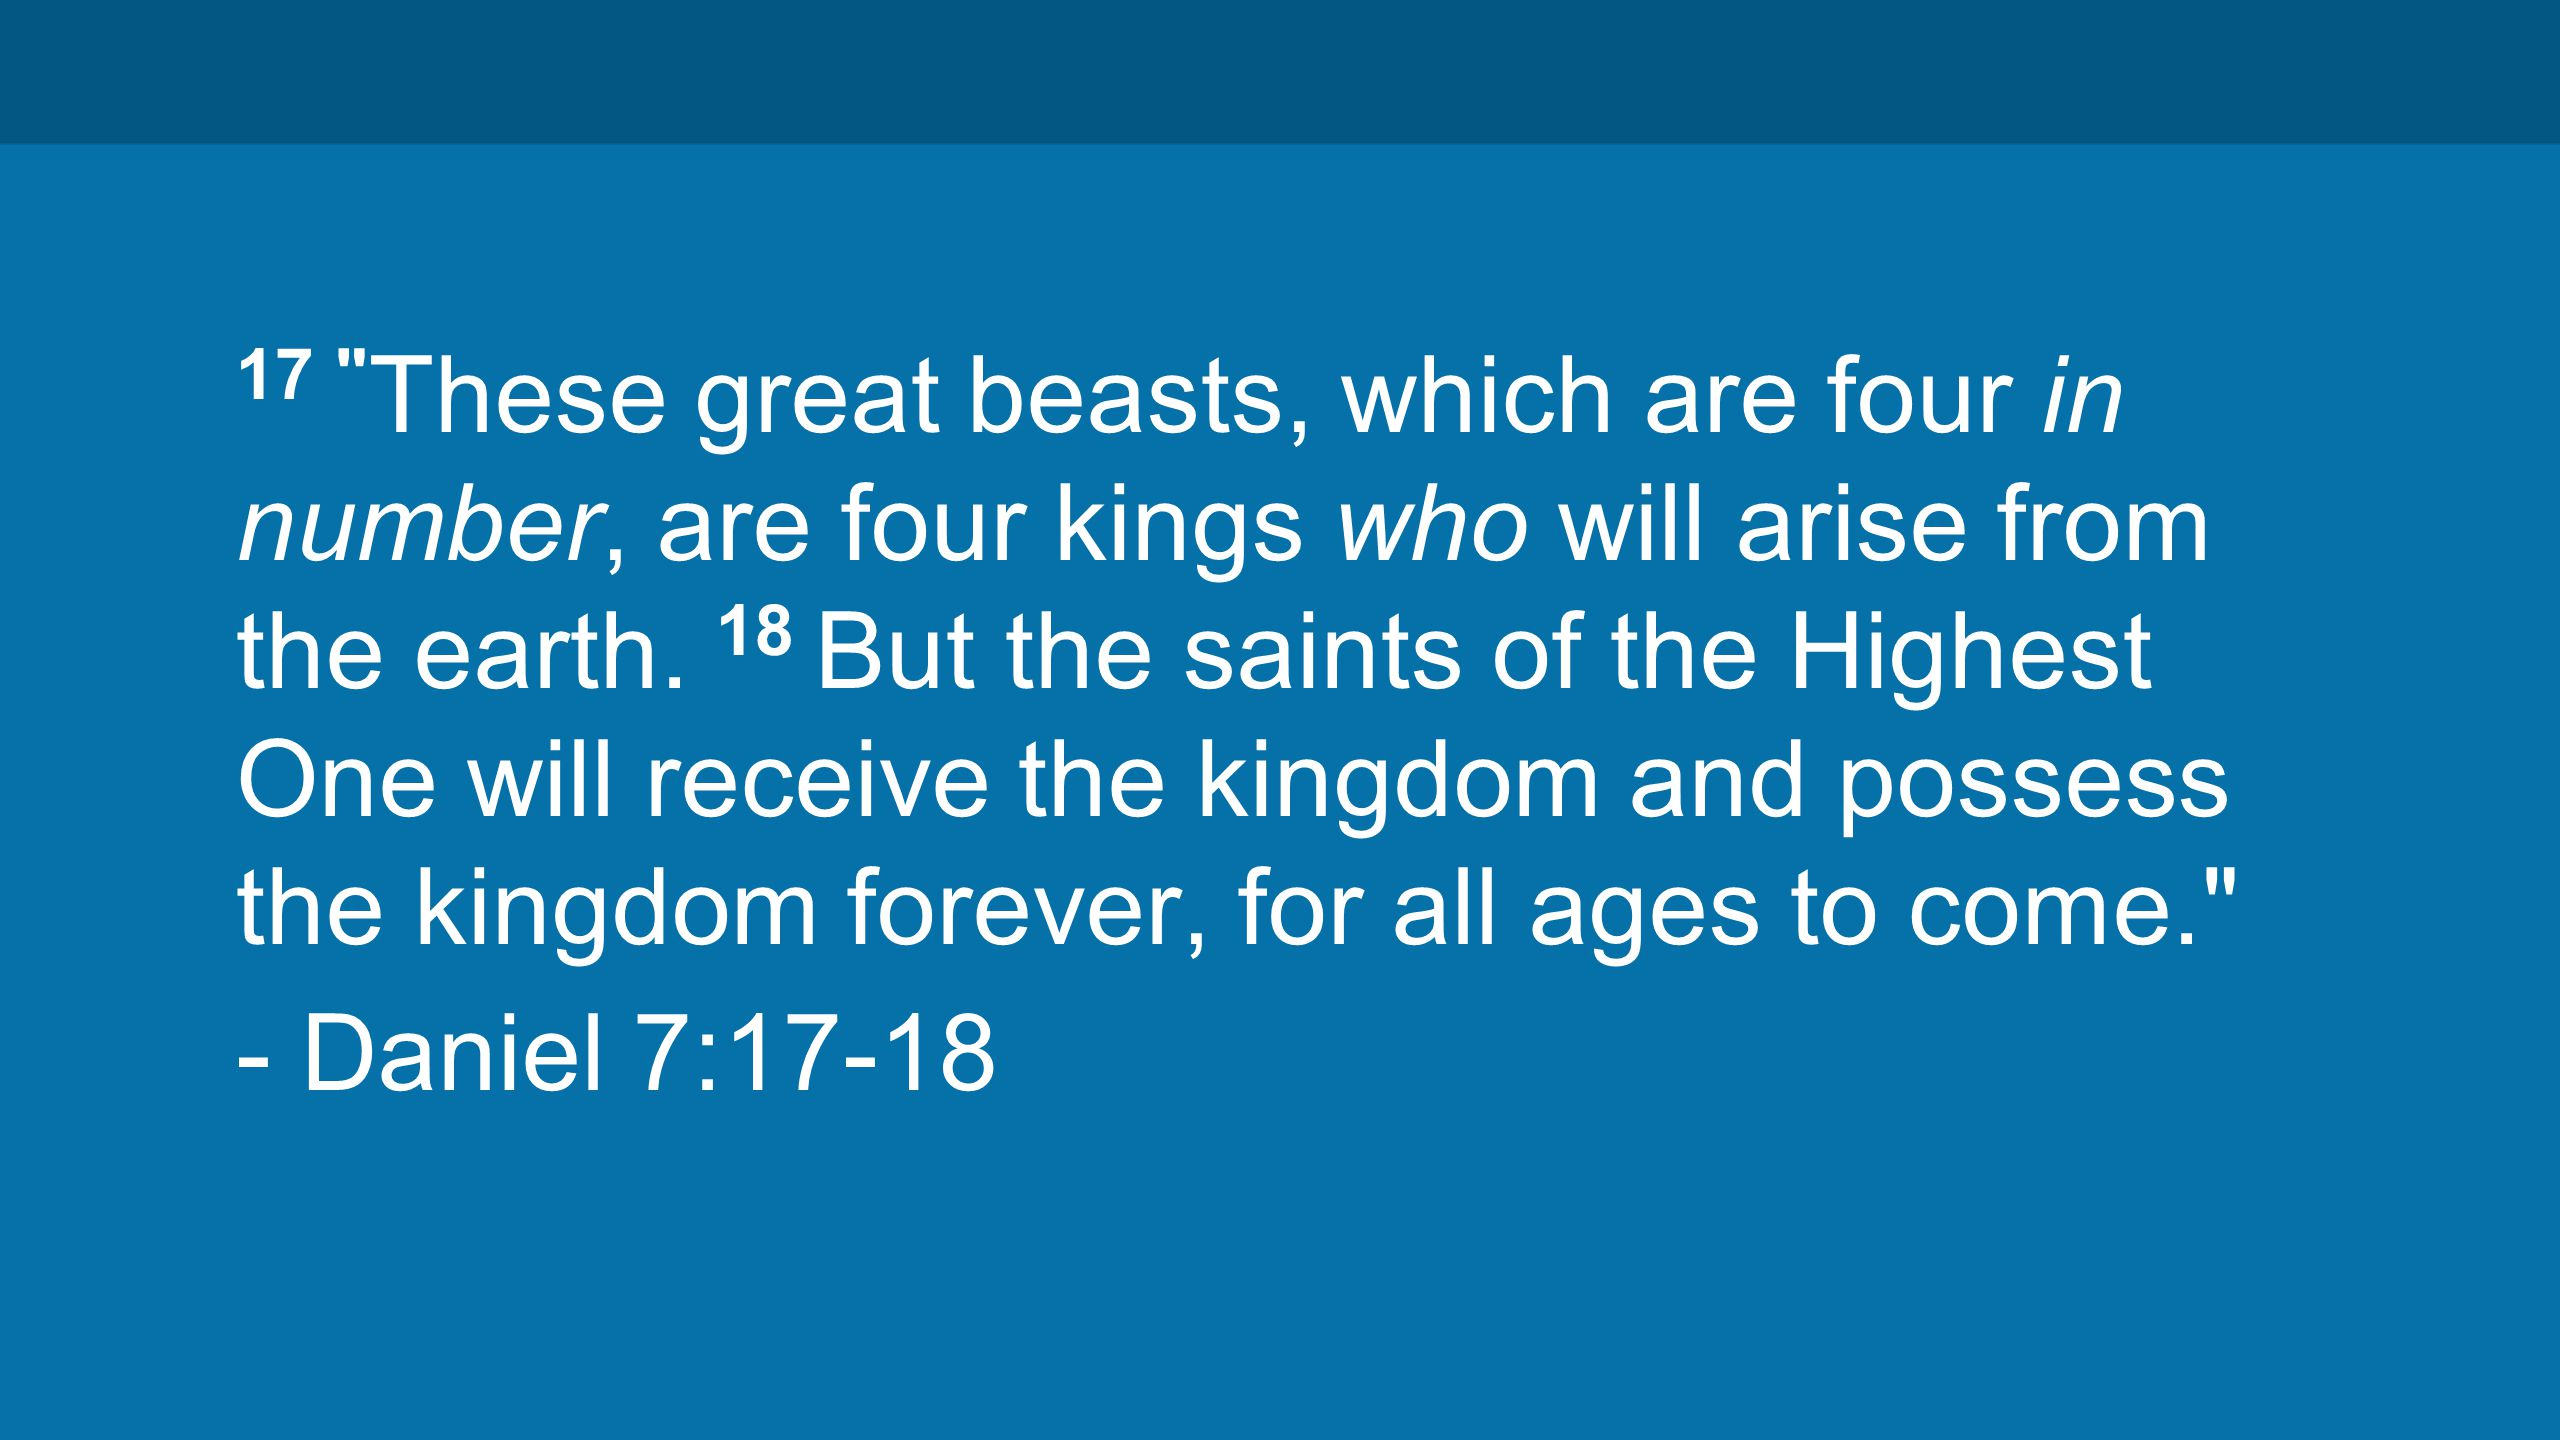 17 These great beasts, which are four in number, are four kings who will arise from the earth.